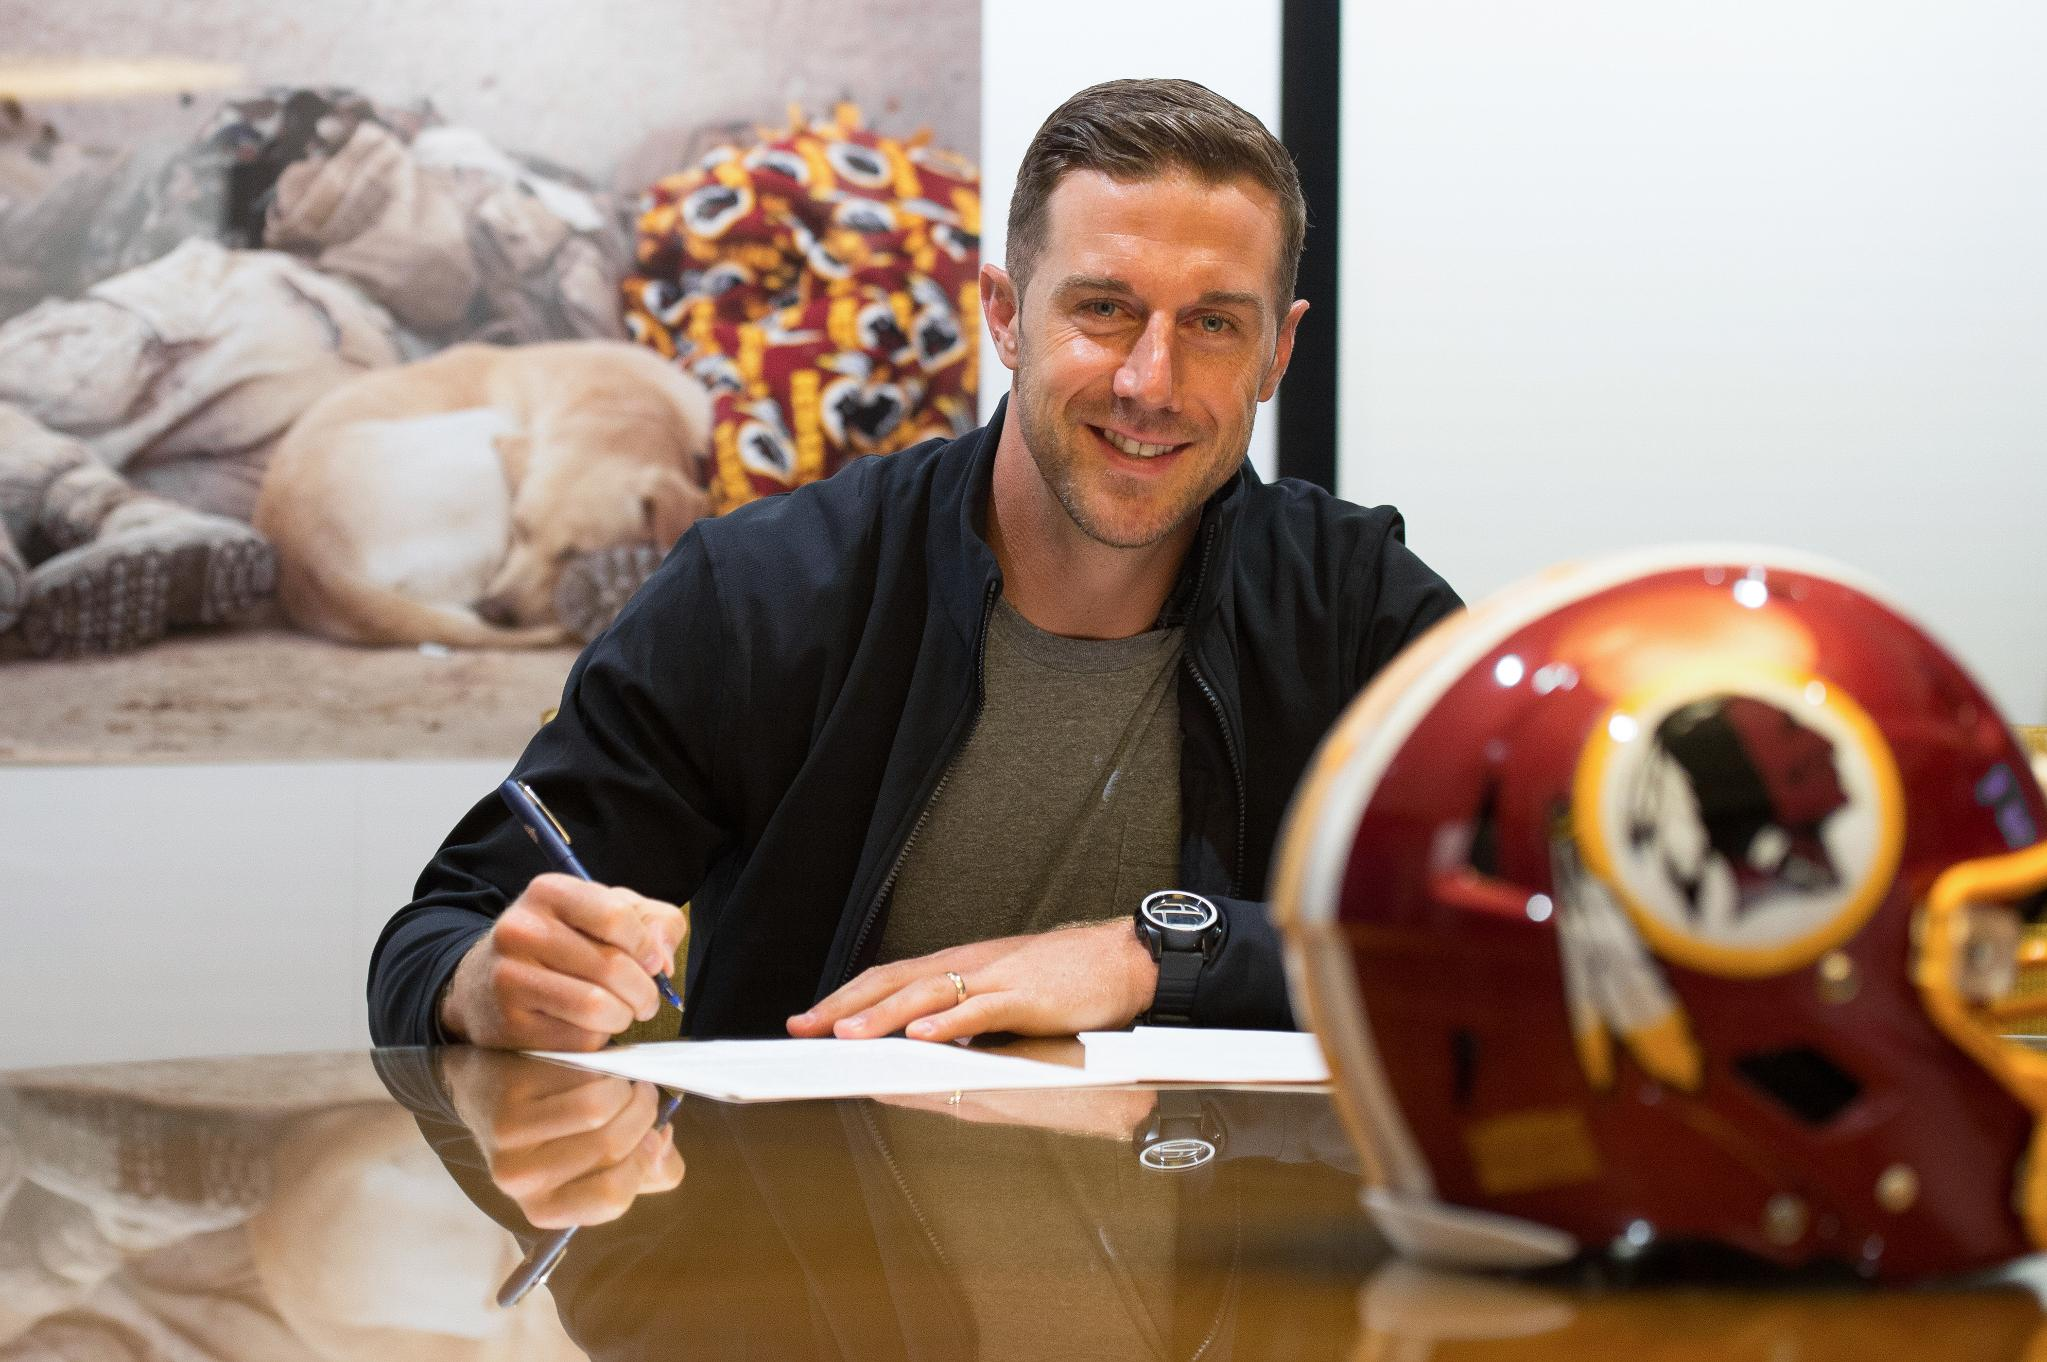 A look back at Alex Smith's first day on the job: https://t.co/M51Yfxx6Cw https://t.co/6ta8eoyTwc